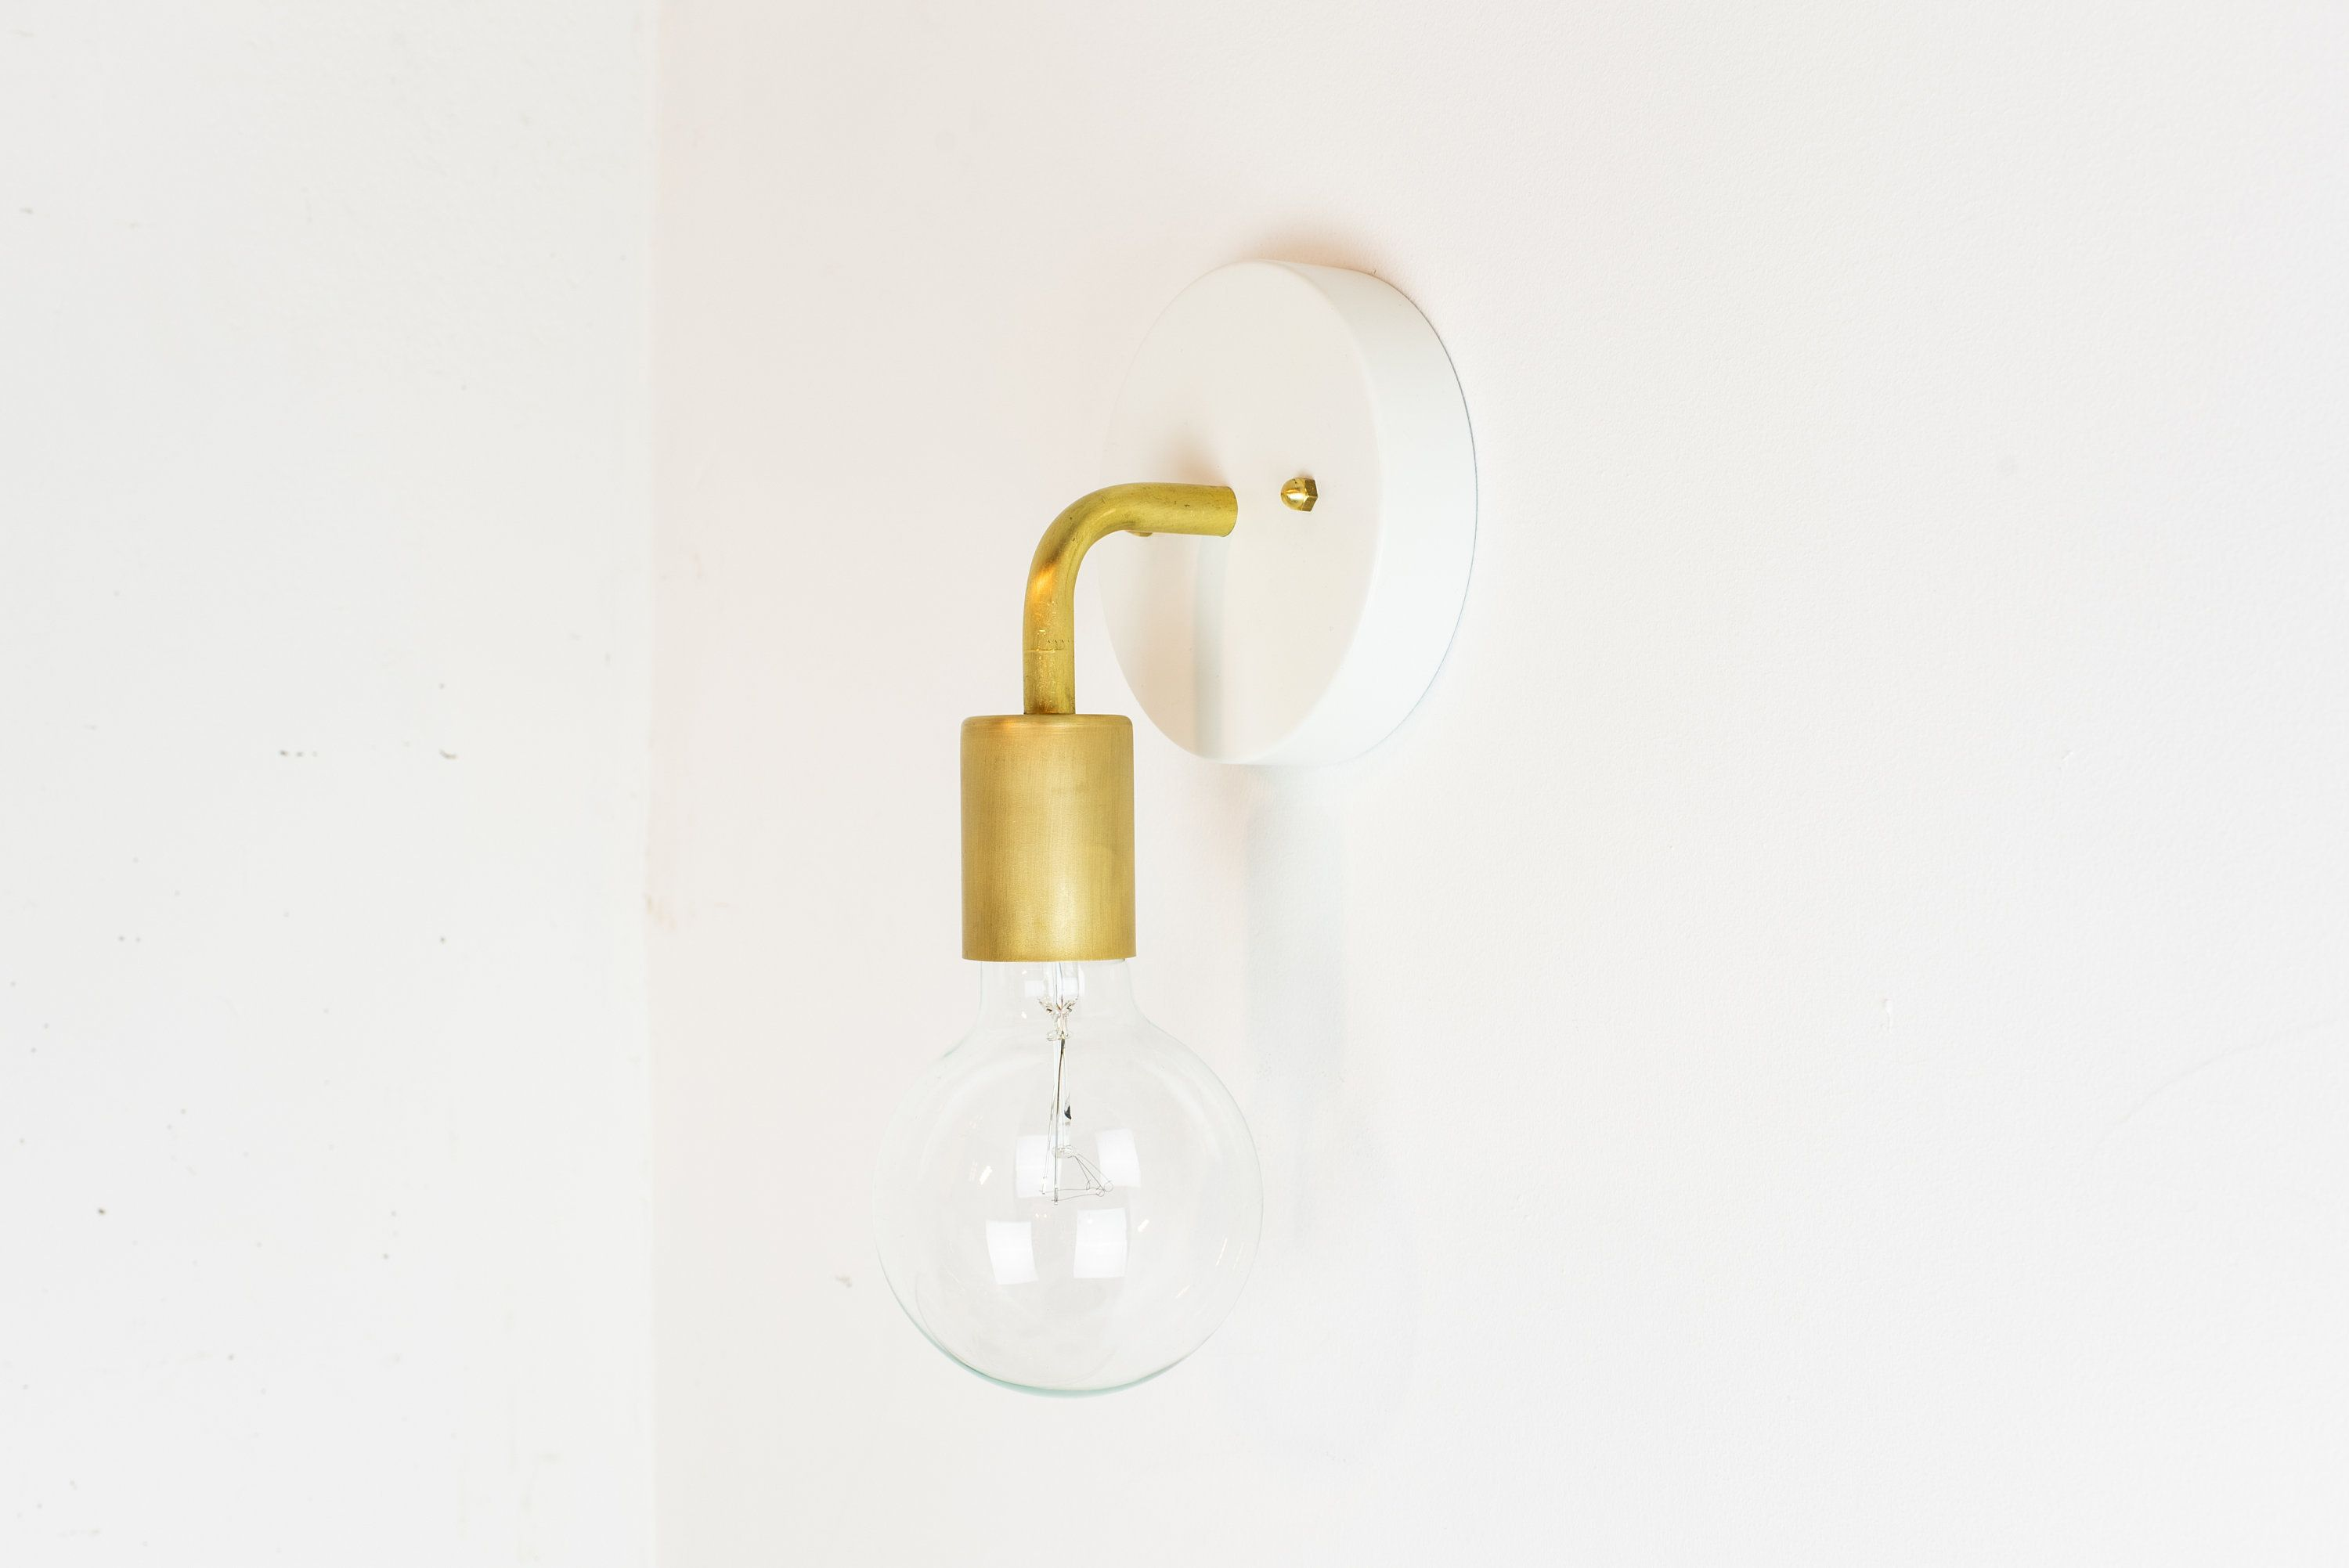 White And Brass Wall Lamp Plug In Wall Sconce Vanity Light Bathroom Light Mid Century Modern With Images Brass Wall Lamp Plug In Wall Sconce Plug In Wall Lights